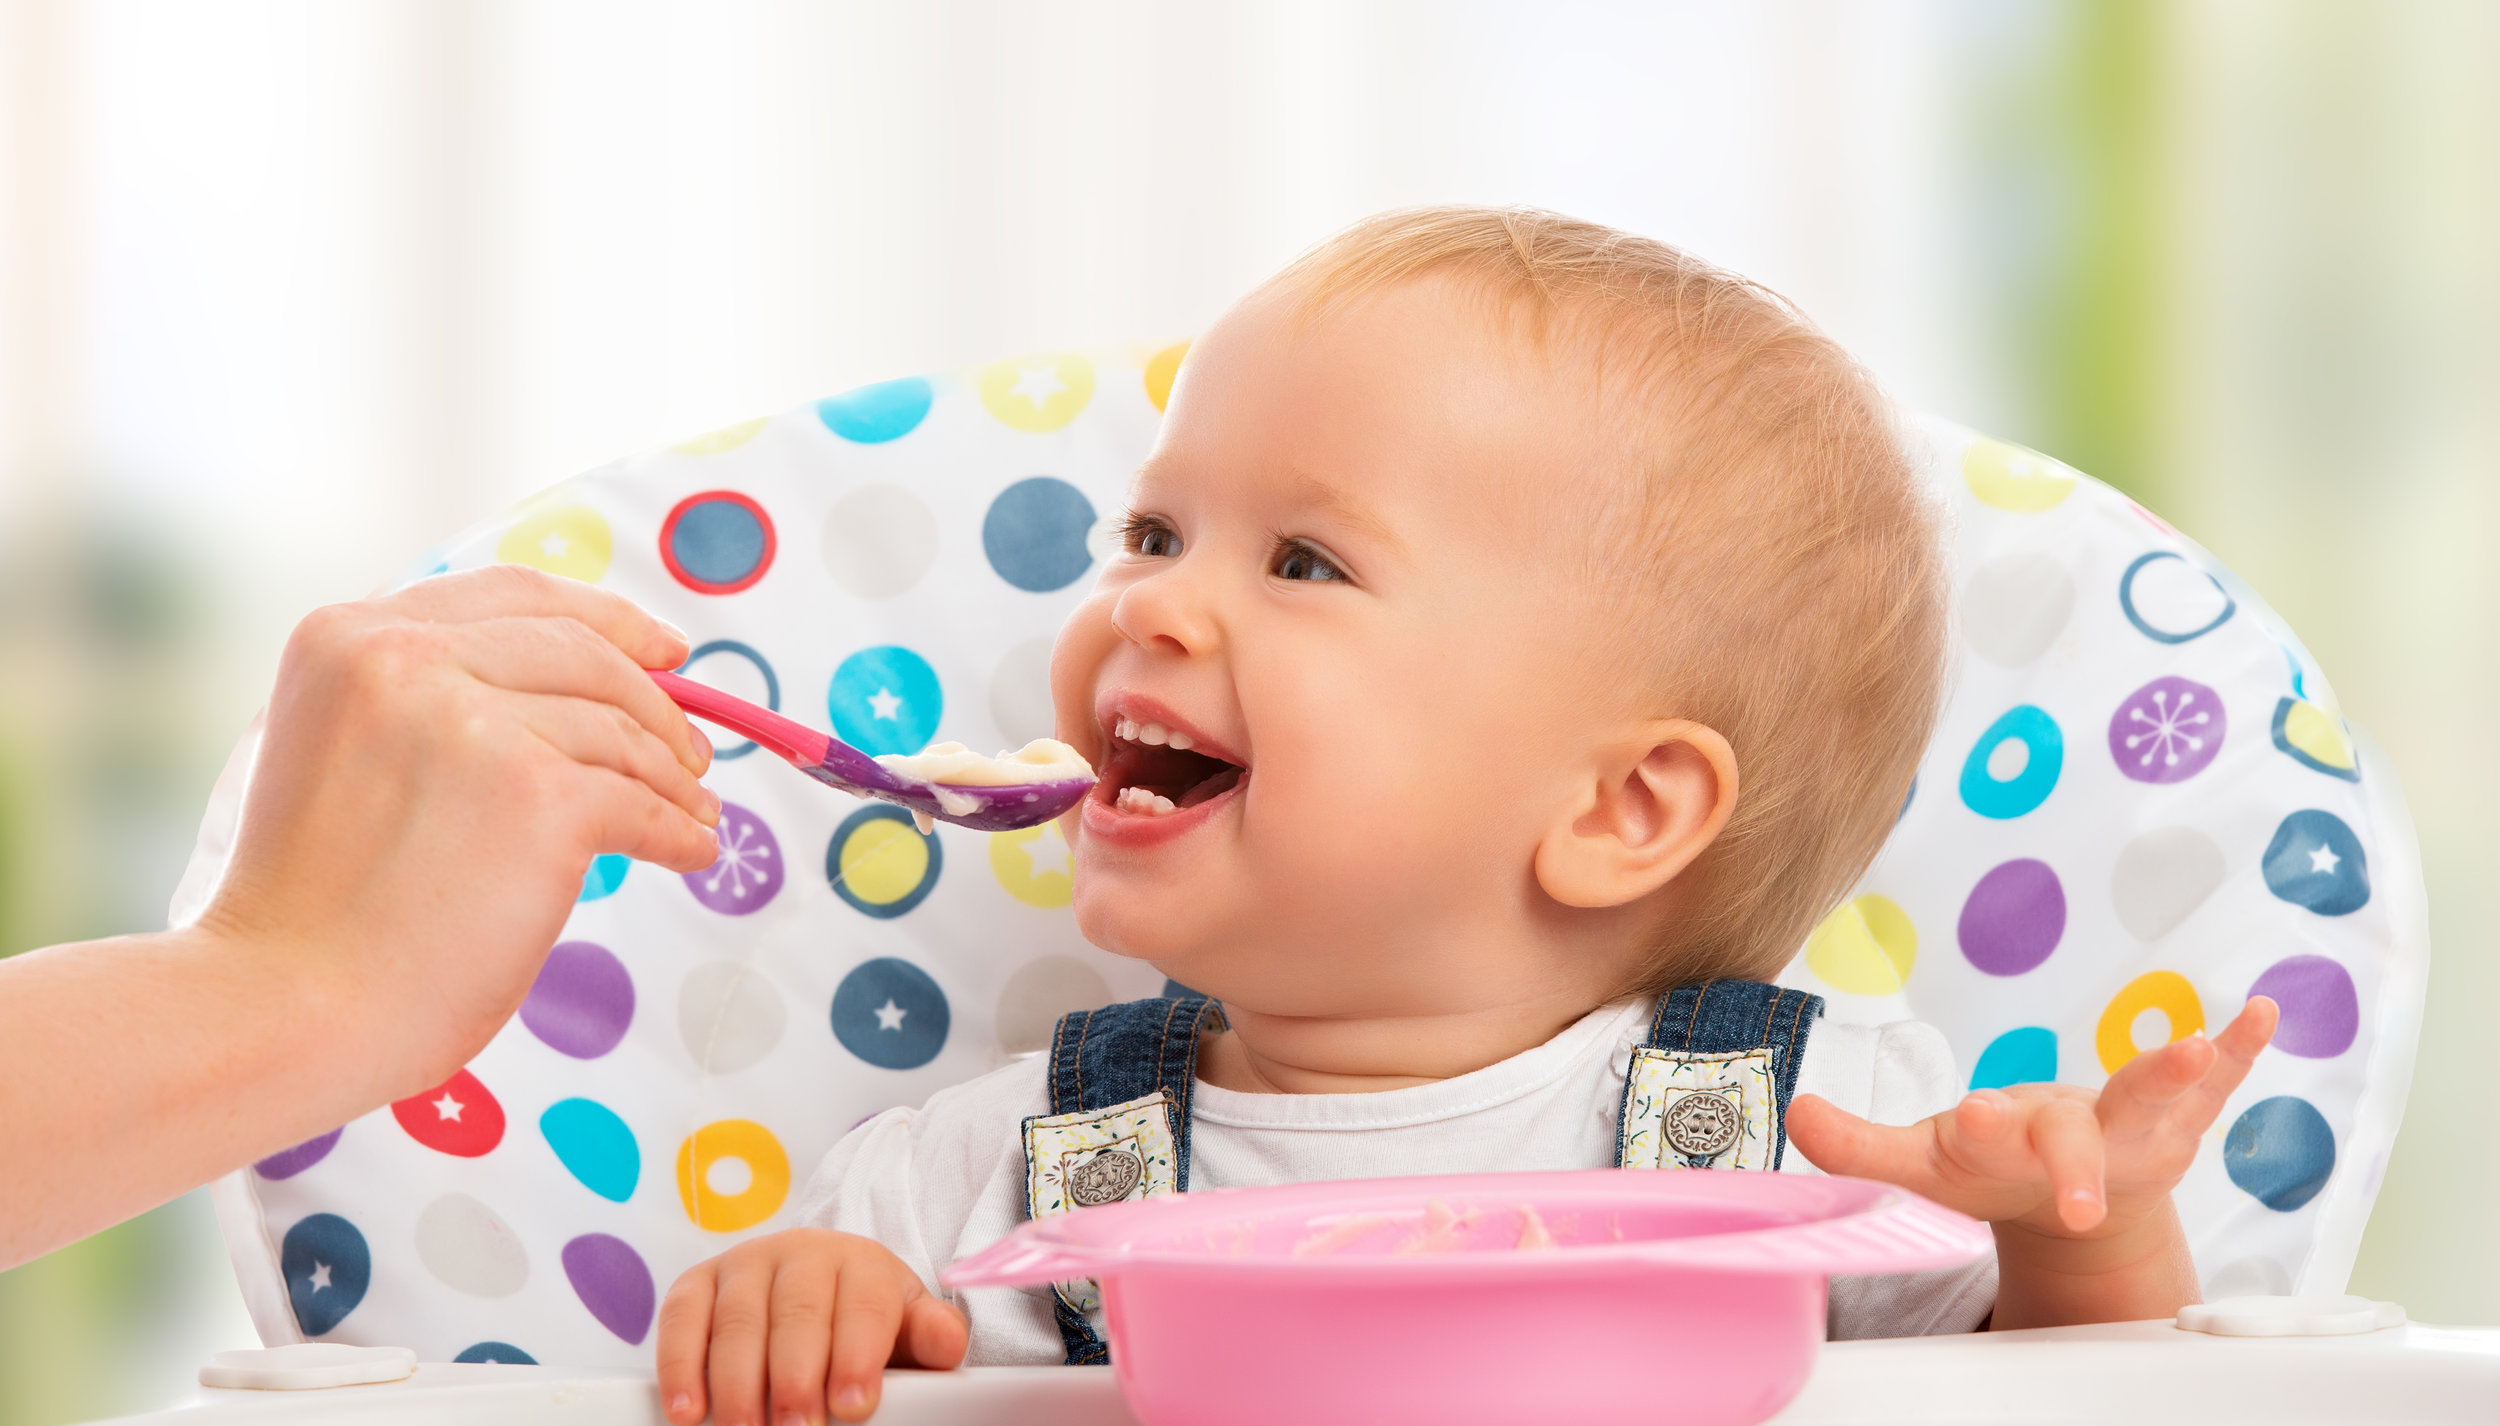 Our team aims to support healthy eating habits and transform mealtimes into successful experiences.Our lead feeding therapist focuses on oral-motor concerns, provides comprehensive evaluation and intervention services to support the child and the family with feeding difficulties. -